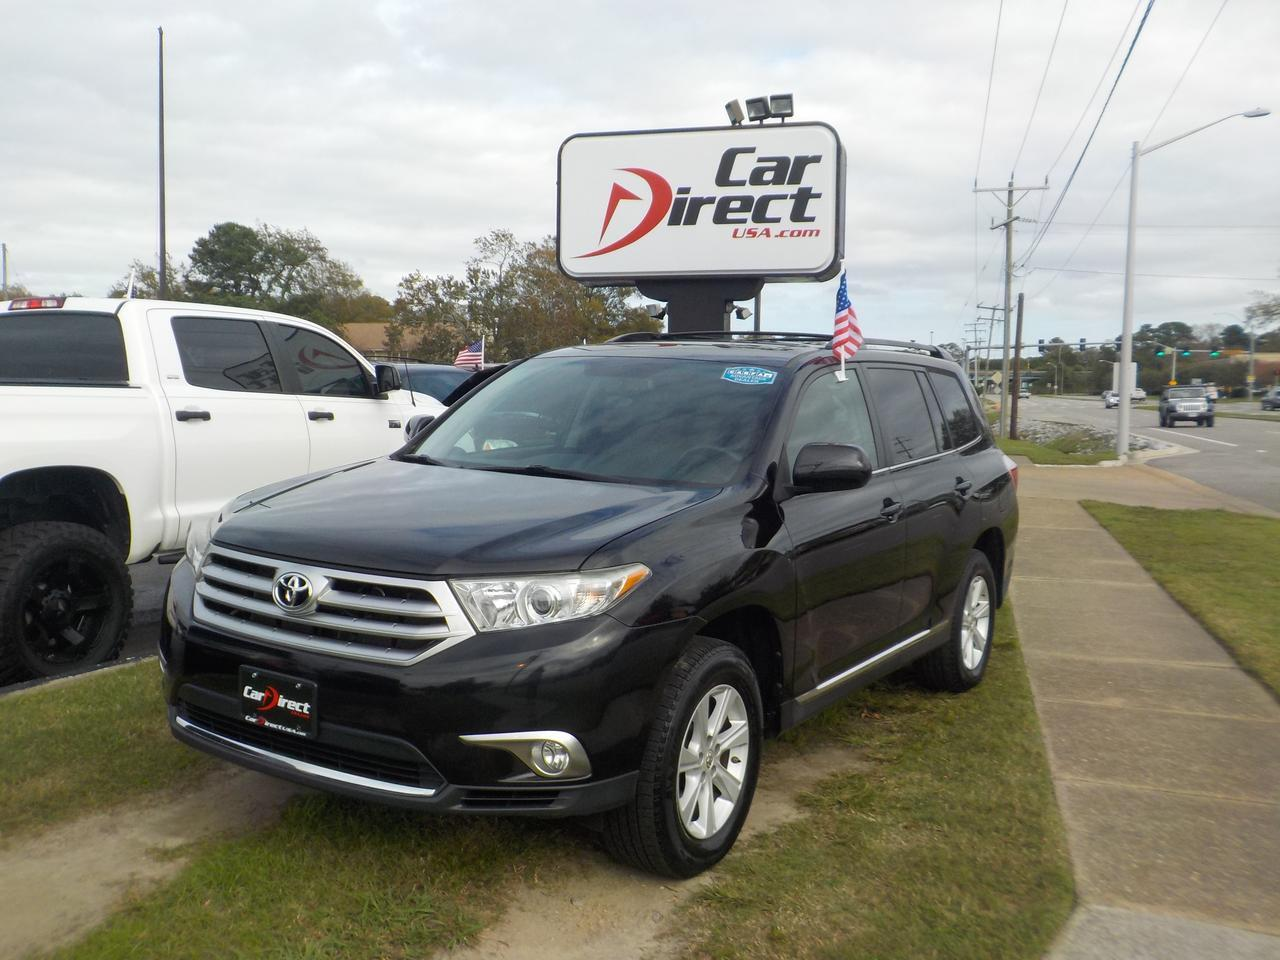 2012 TOYOTA HIGHLANDER AWD, ONE OWNER, LEATHER, SUNROOF, 3RD ROW SEATING, HEATED SEATS, ONLY 88K MILES!